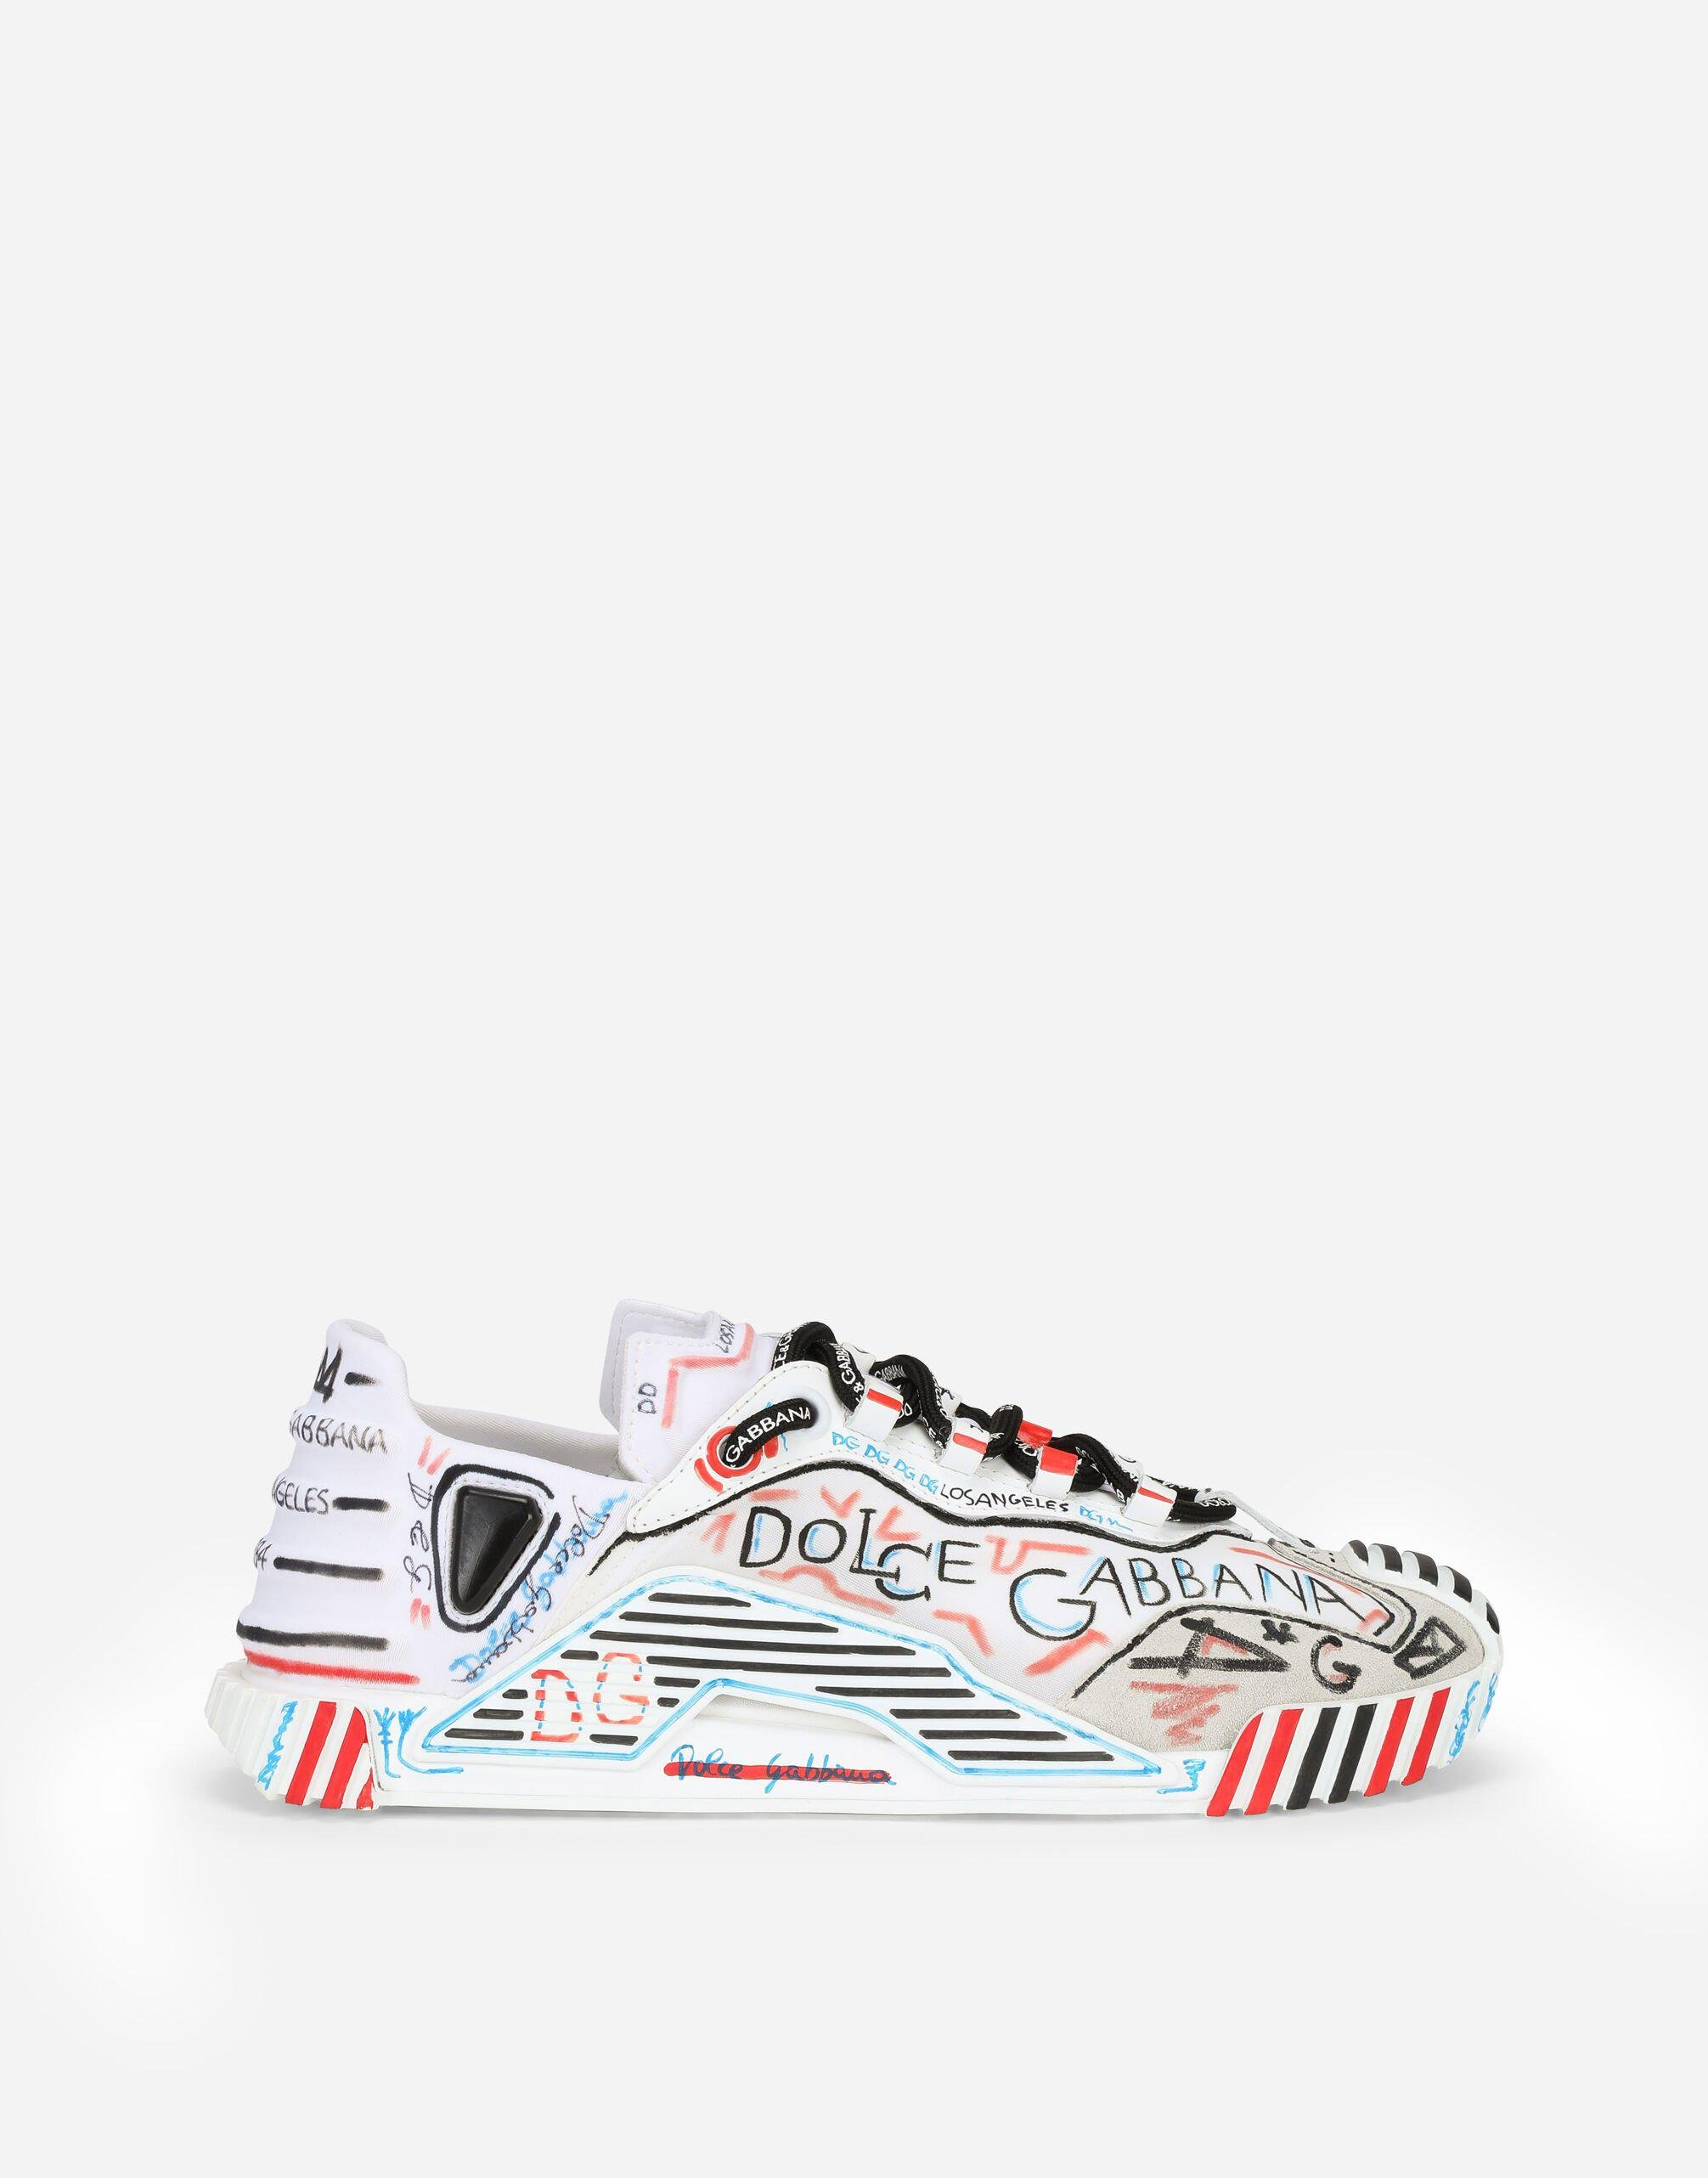 Mixed-materials Los Angeles NS1 slip-on sneakers